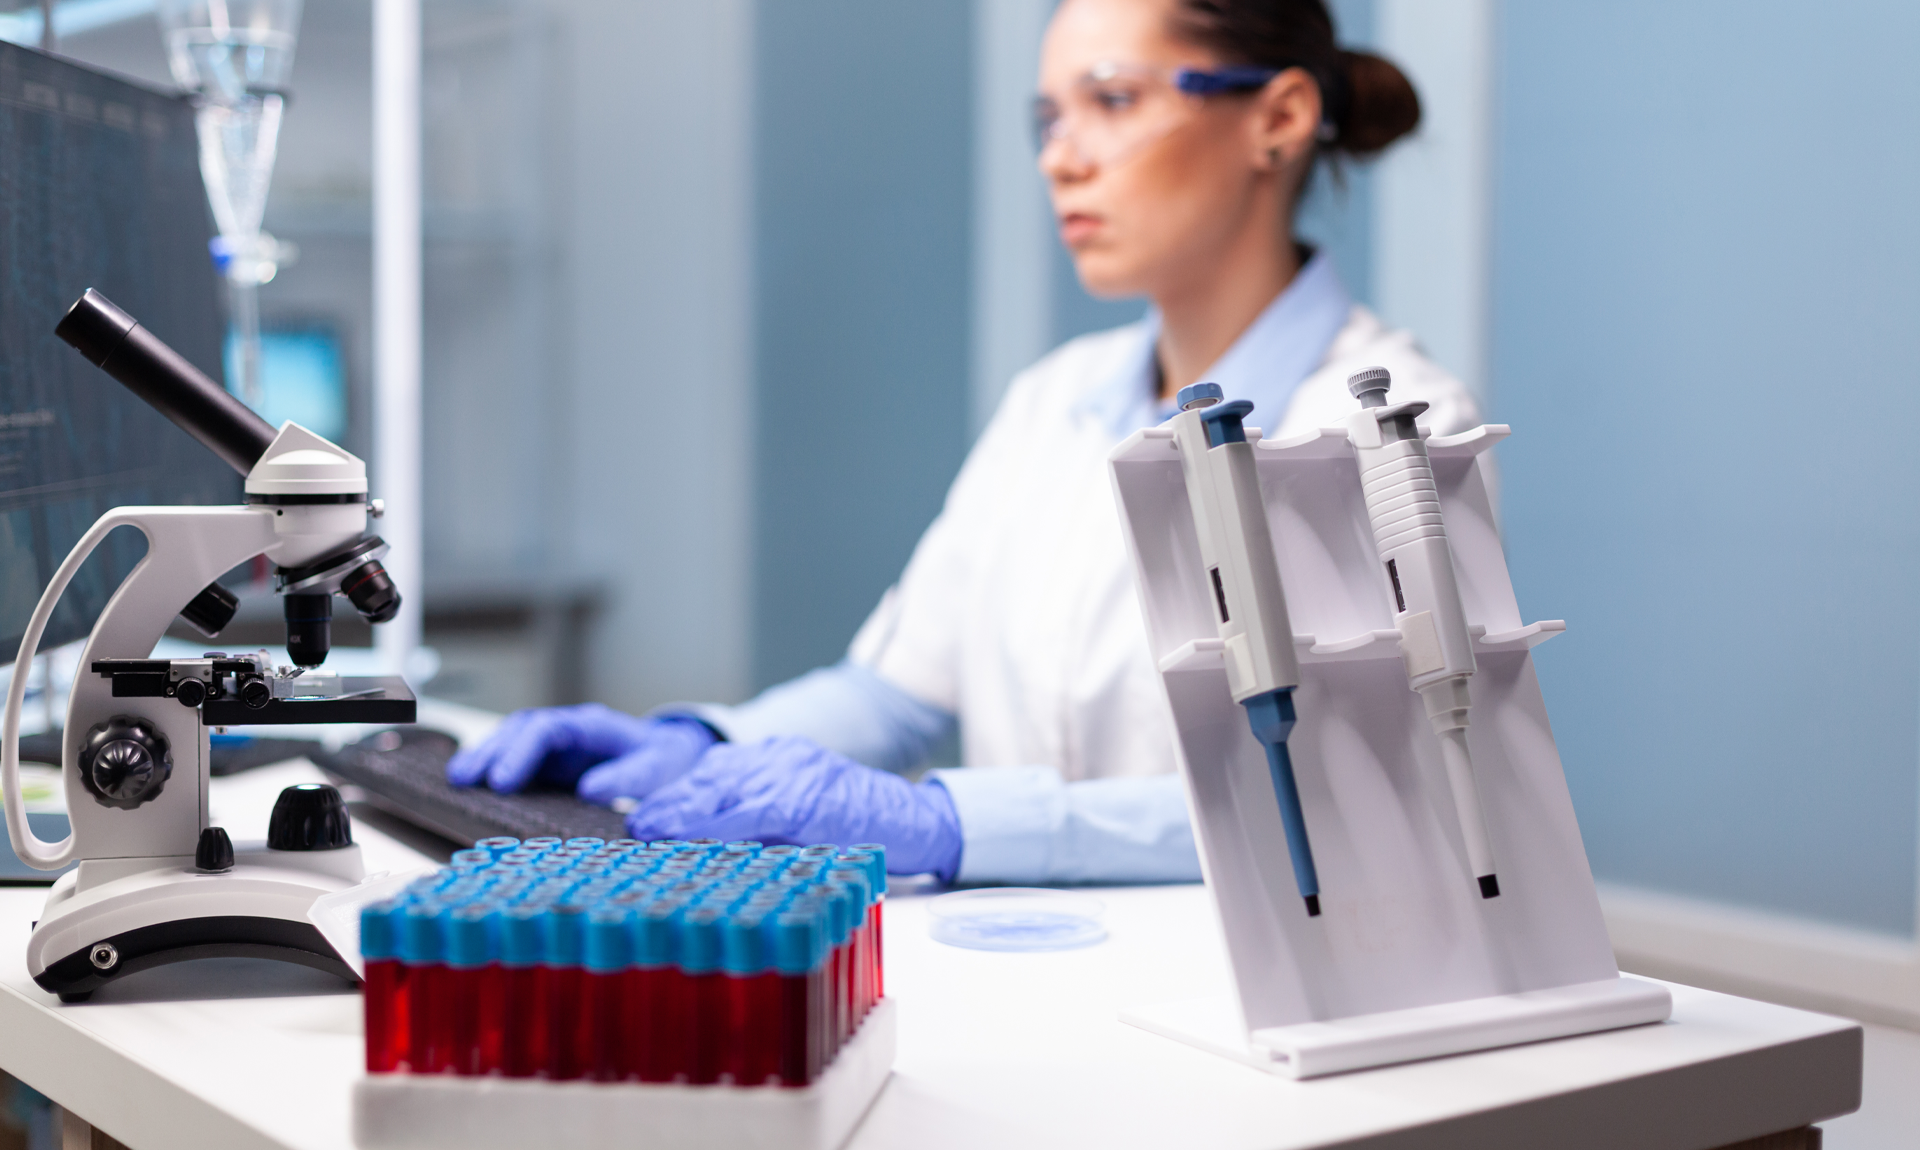 German pharmaceutical industry: image of a scientist